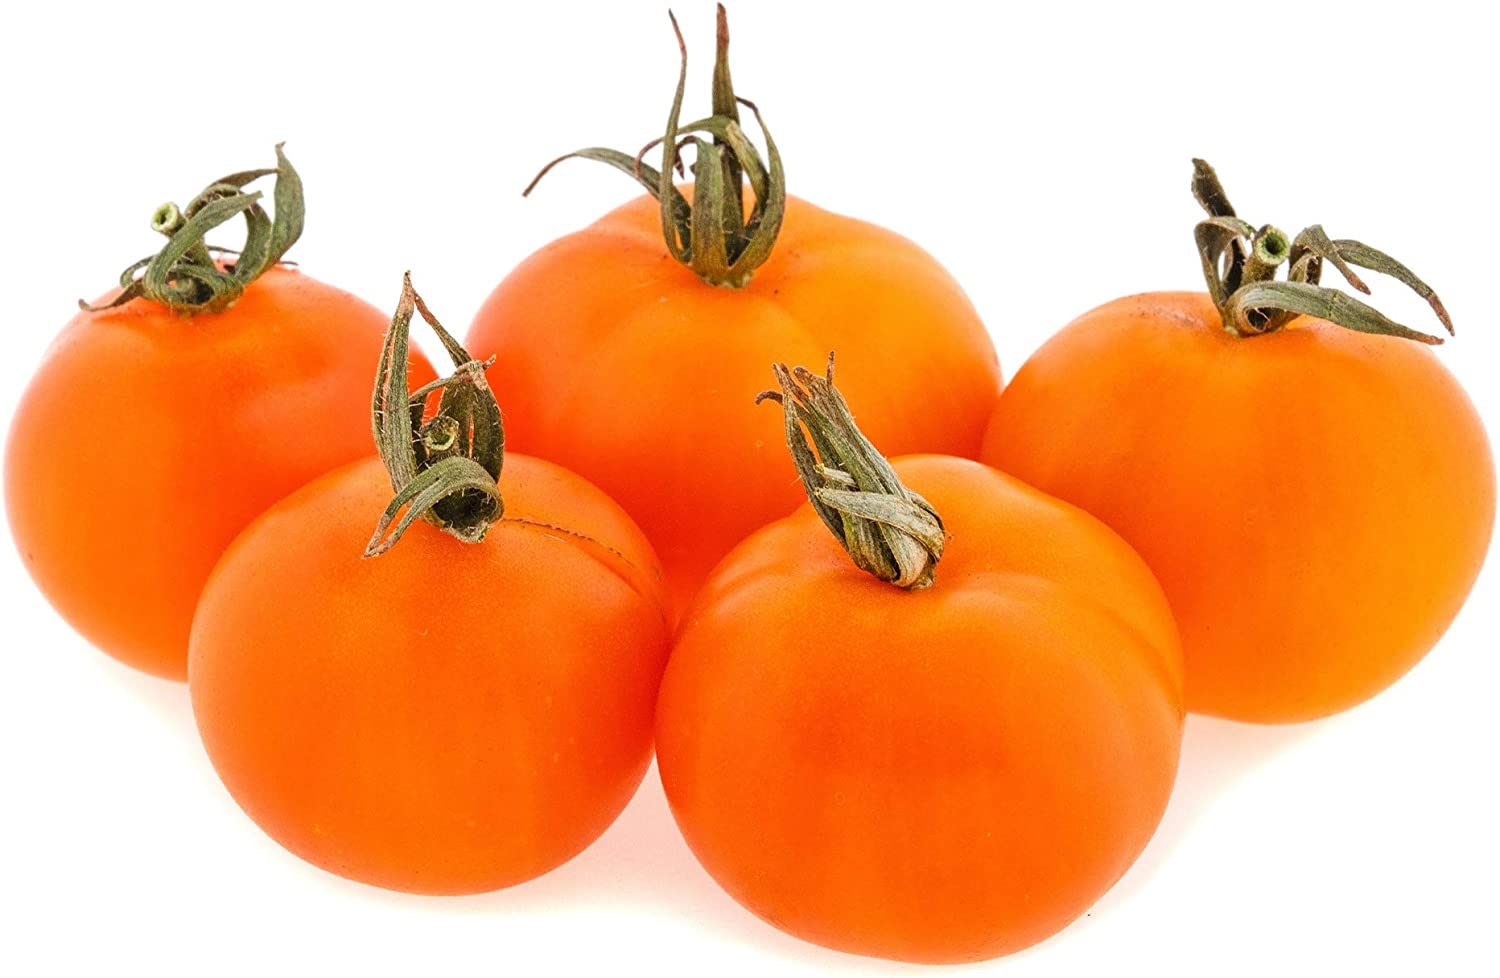 lowest price Tomato Seeds - Cherry Orange 4 lyco 000 Solanum Our shop OFFers the best service ~40 Oz